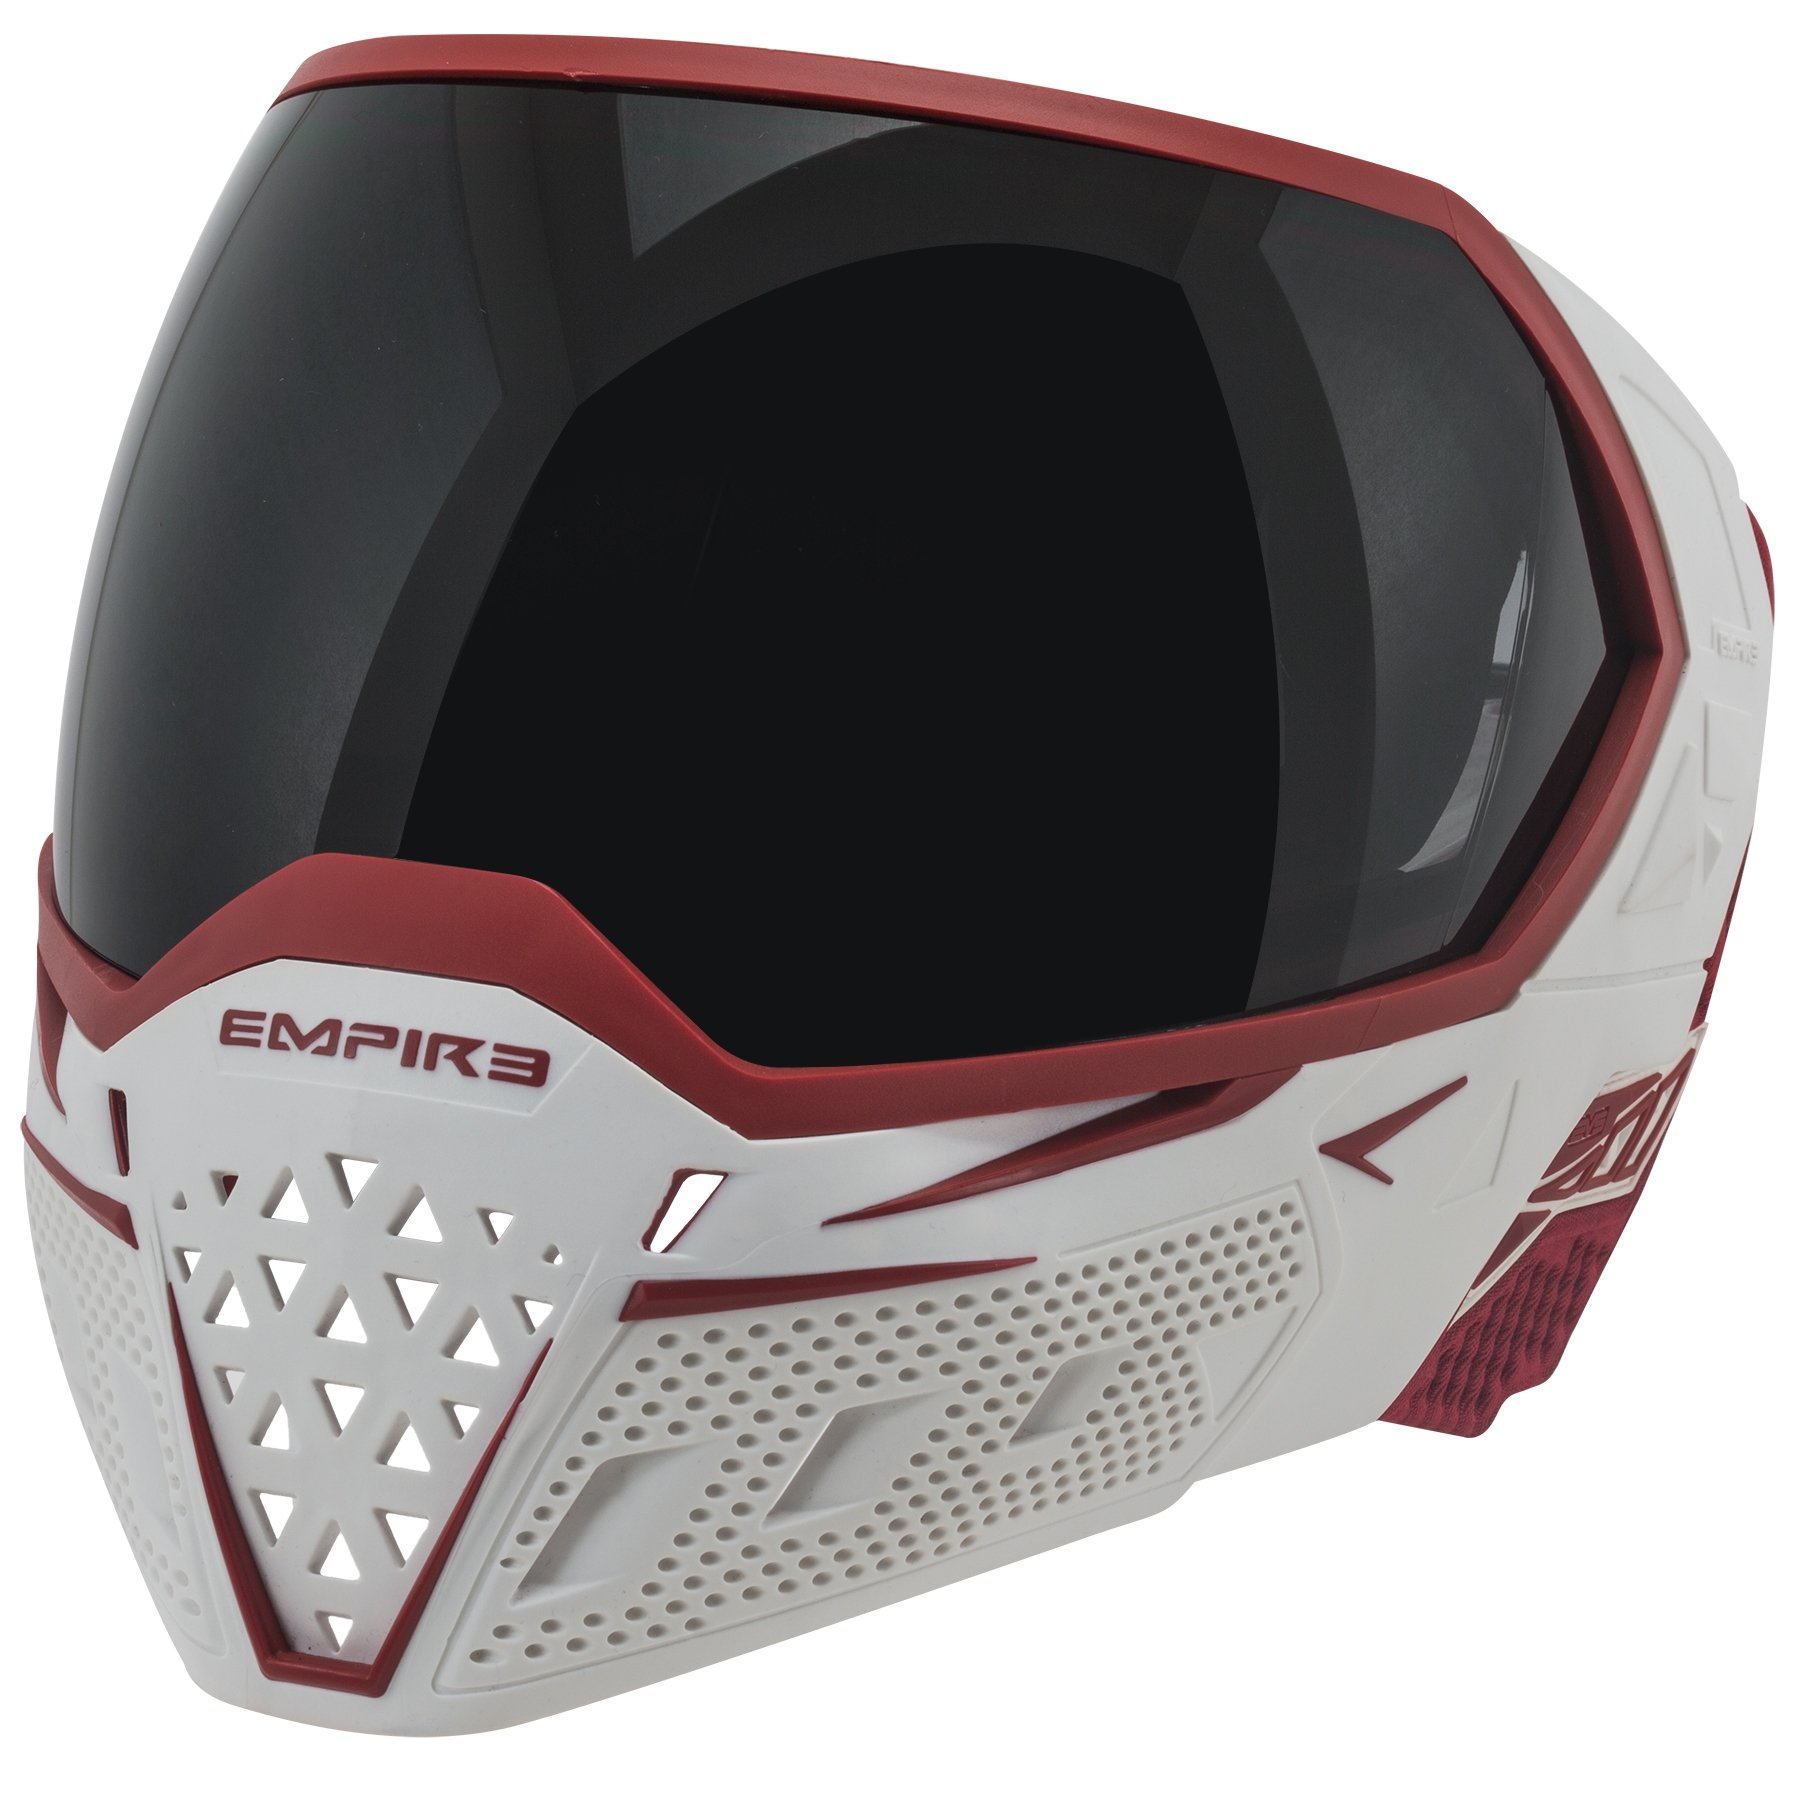 Empire EVS Thermal Paintball Goggles - White / Red by Empire